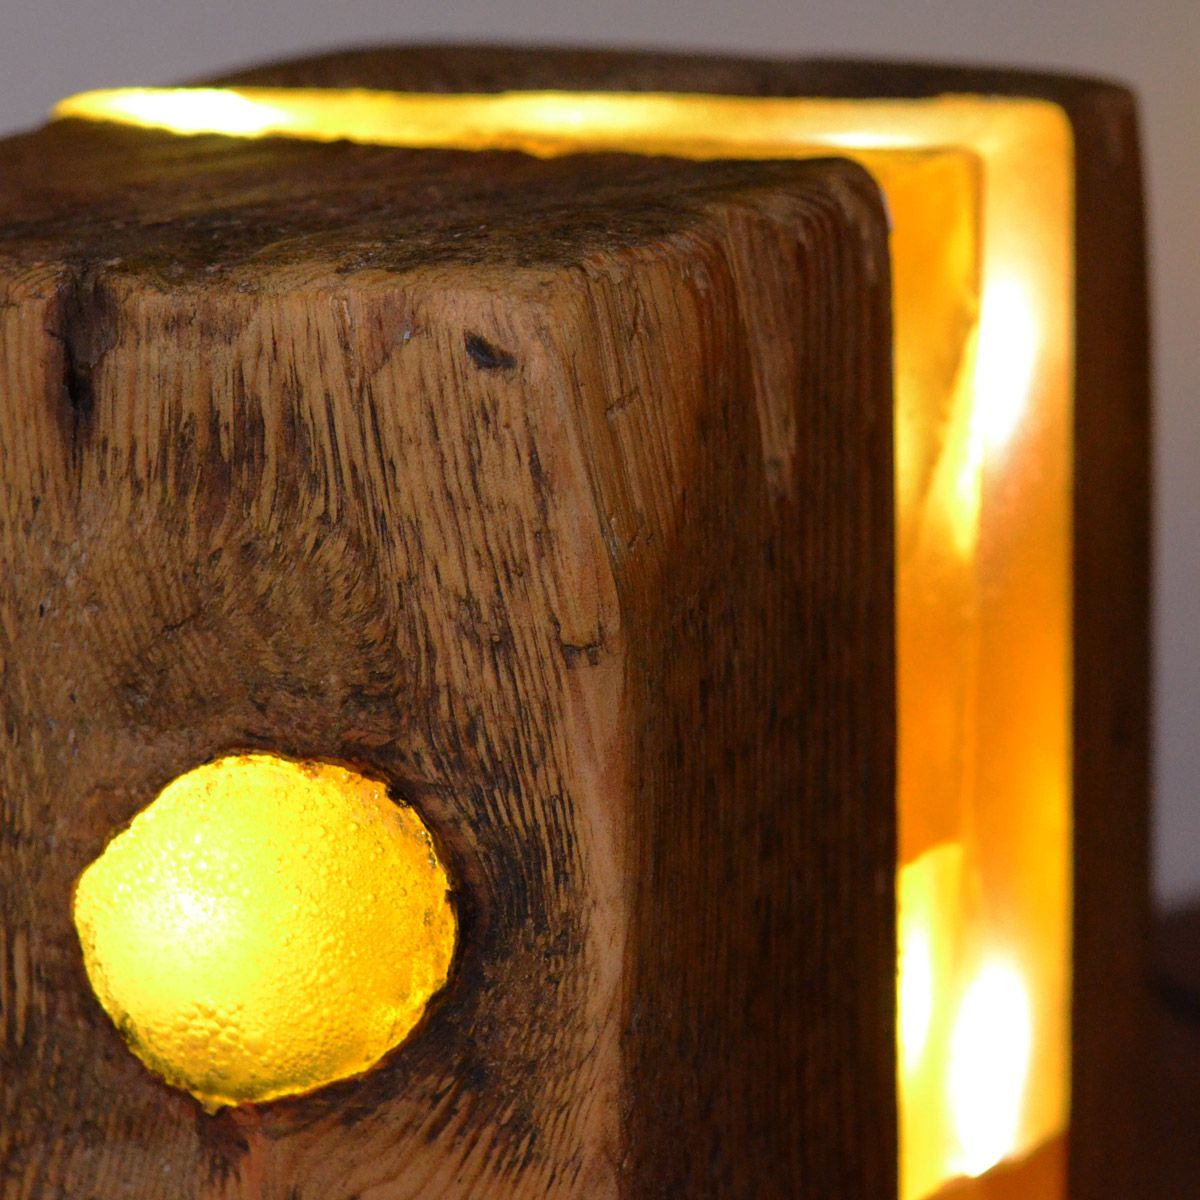 Cast Wood Art : Resin woodblock lamp light sculpture made from old block